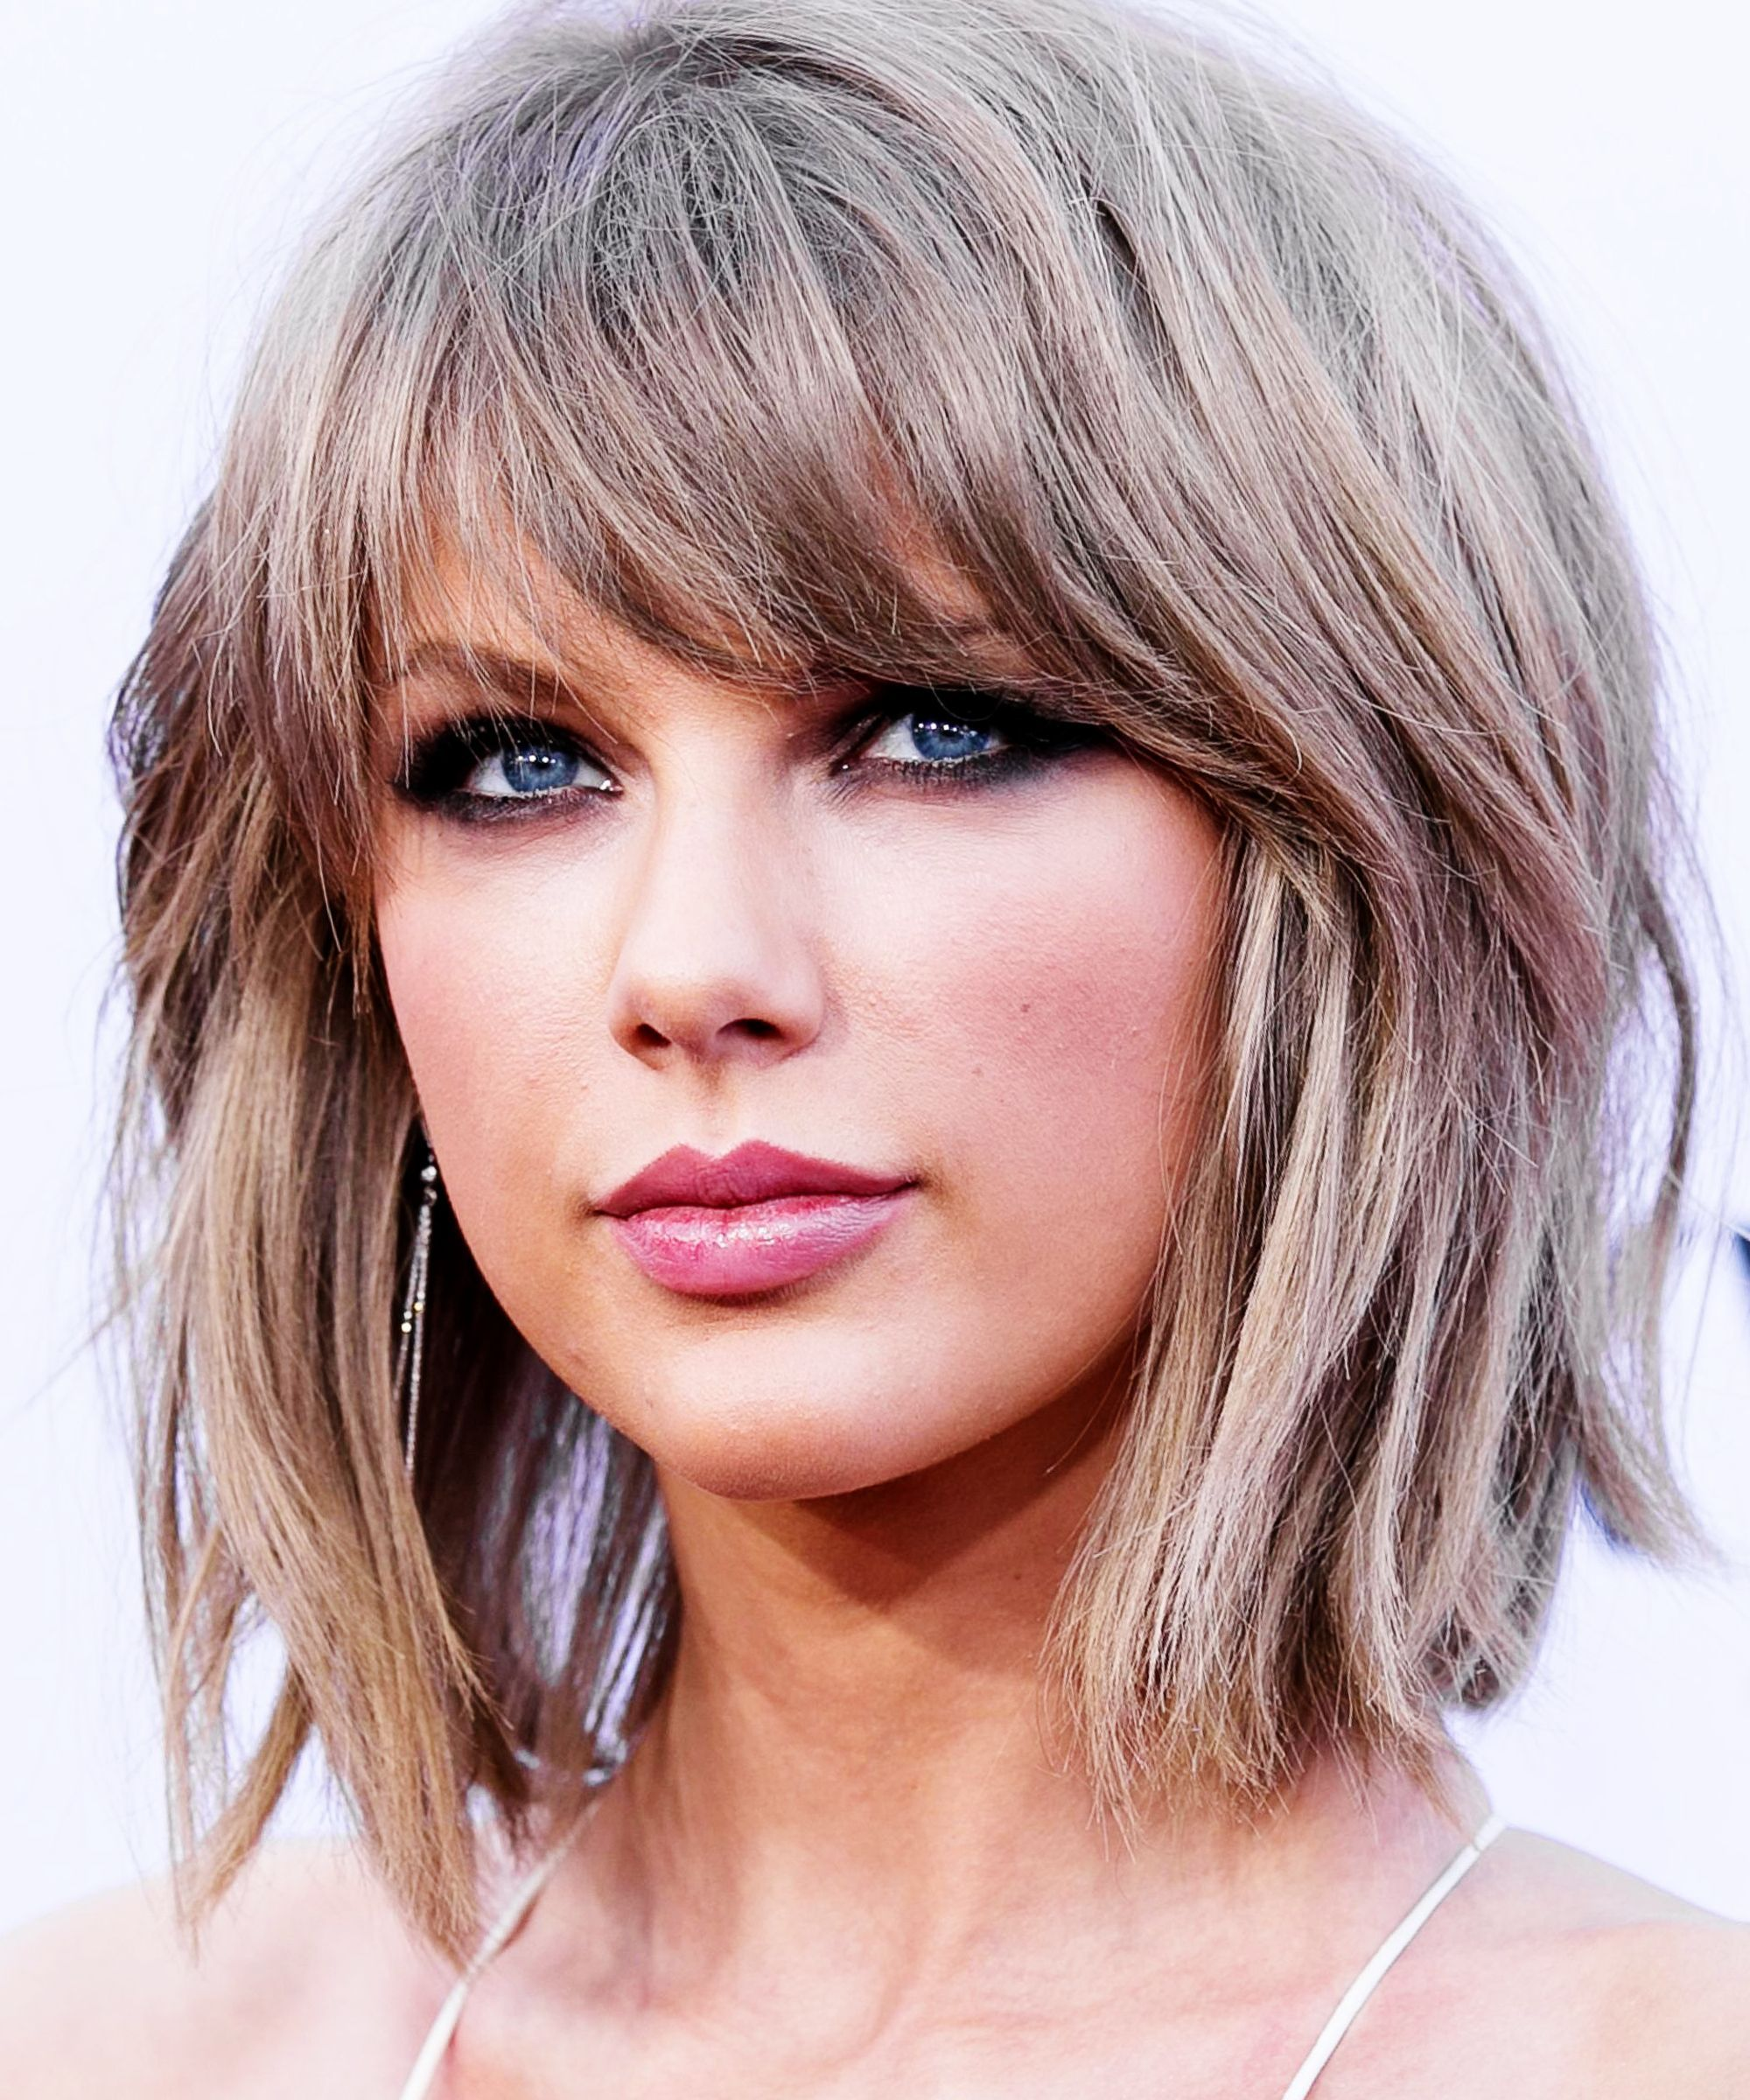 taylor swift goes super short at the grammys | hair | pinterest